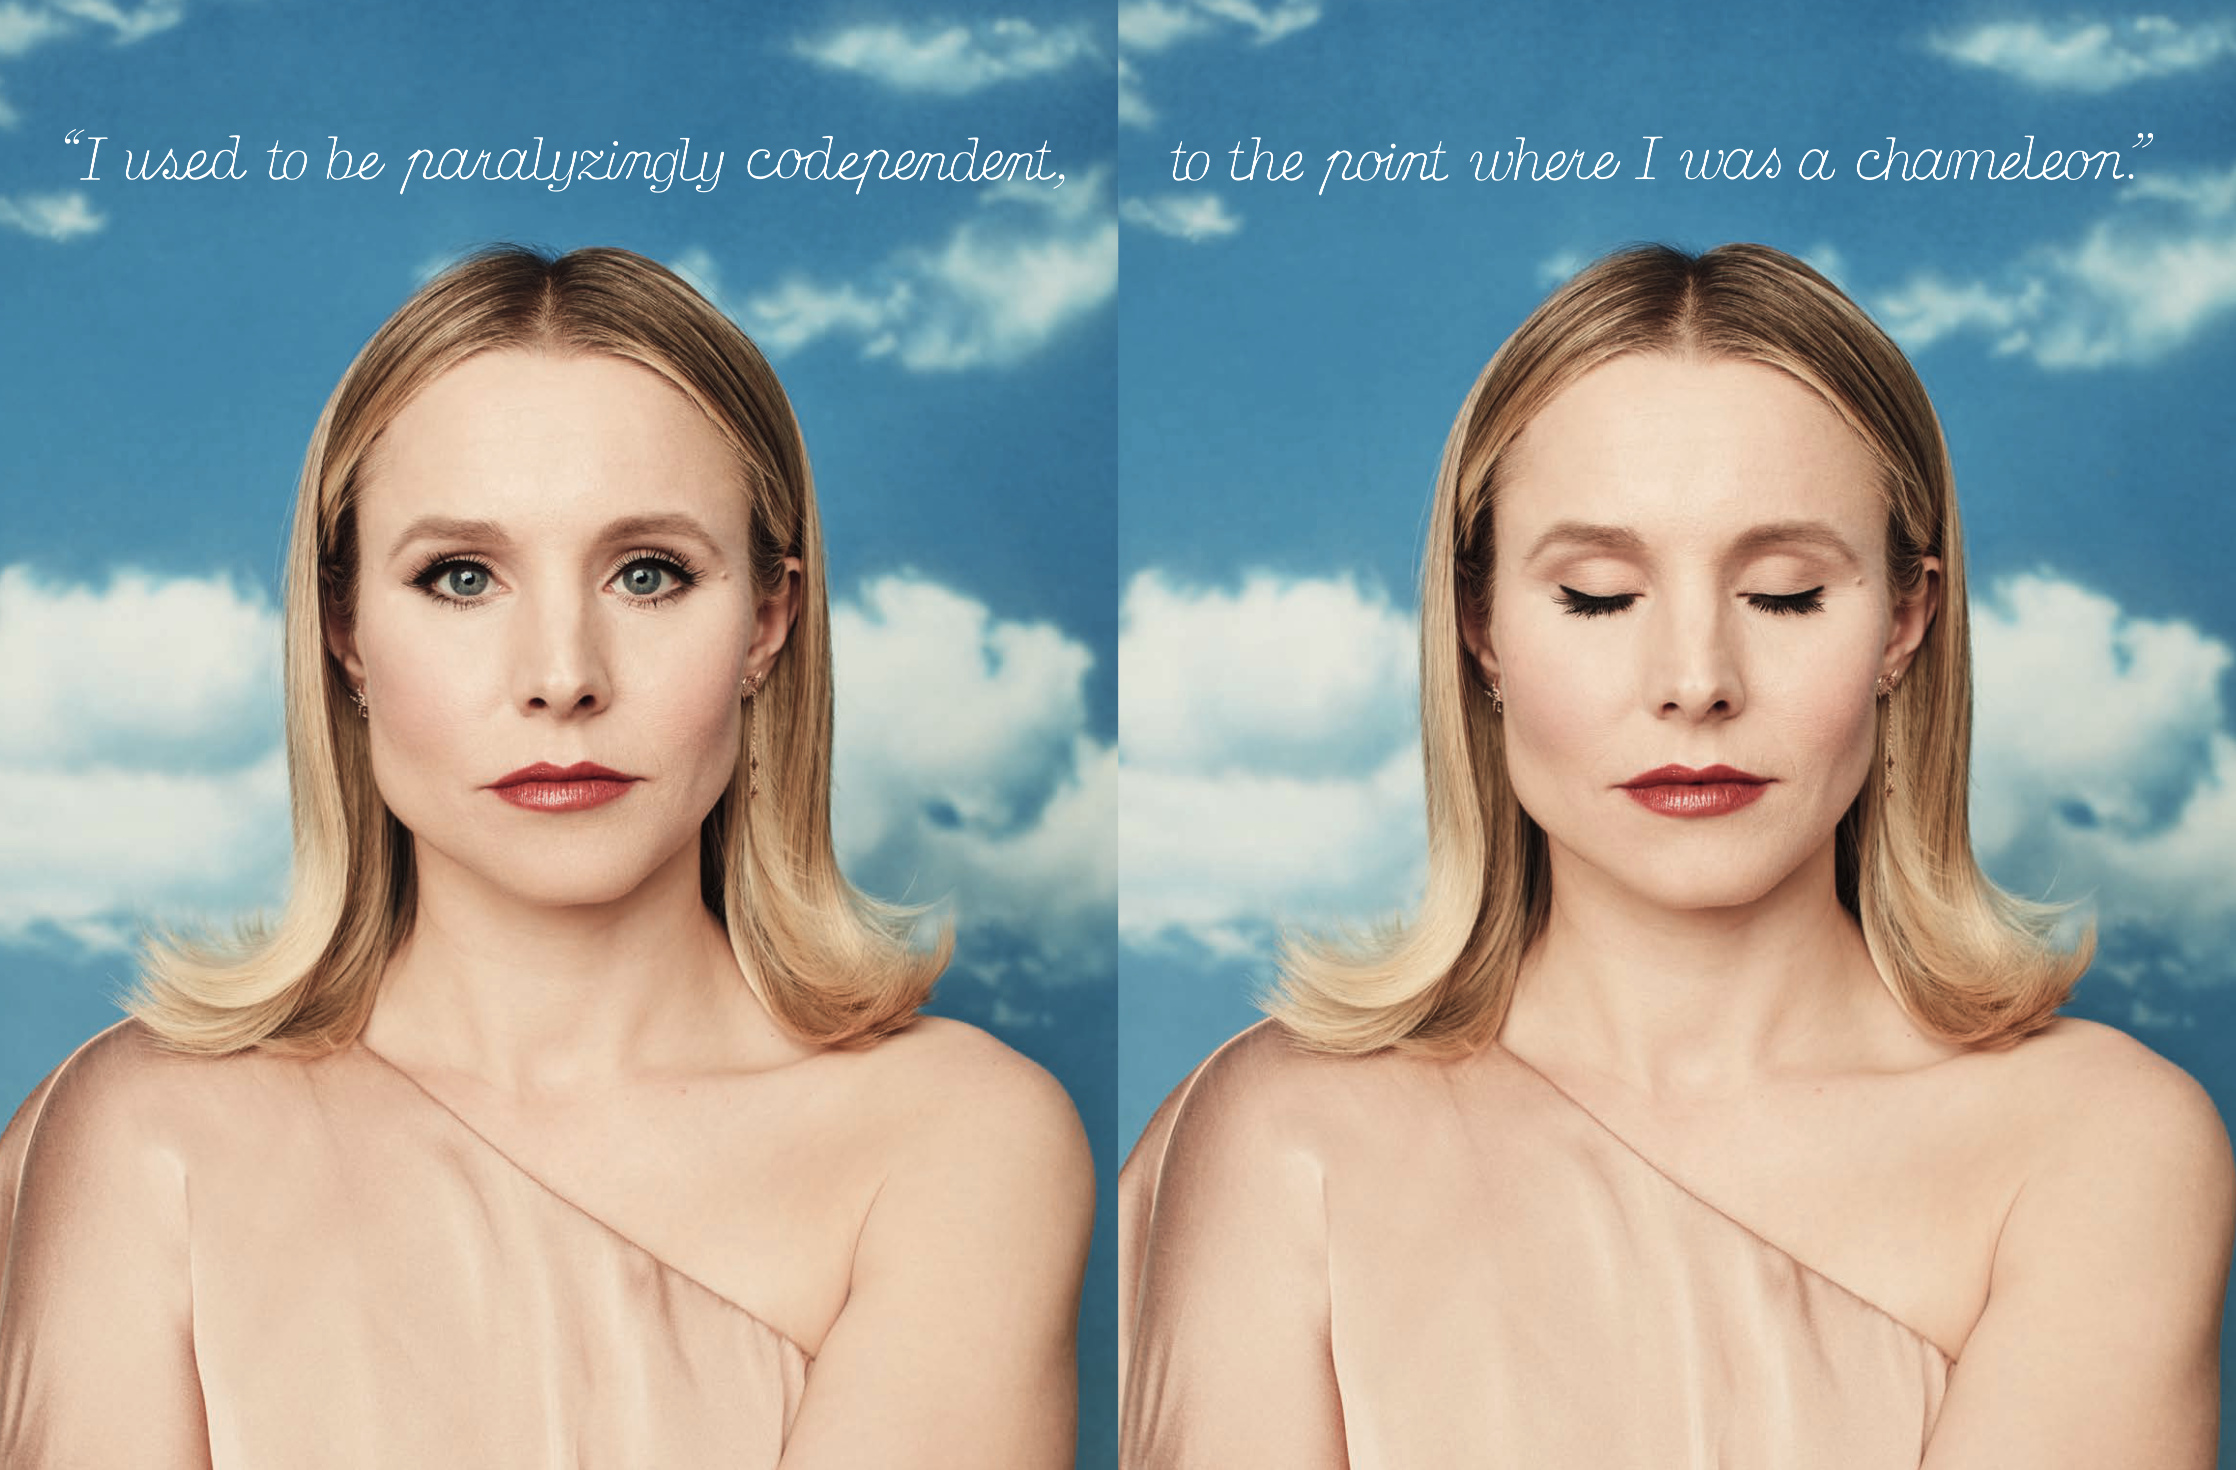 Kristen Bell American Way Sept 2018risten Bell American Way Sept 2018